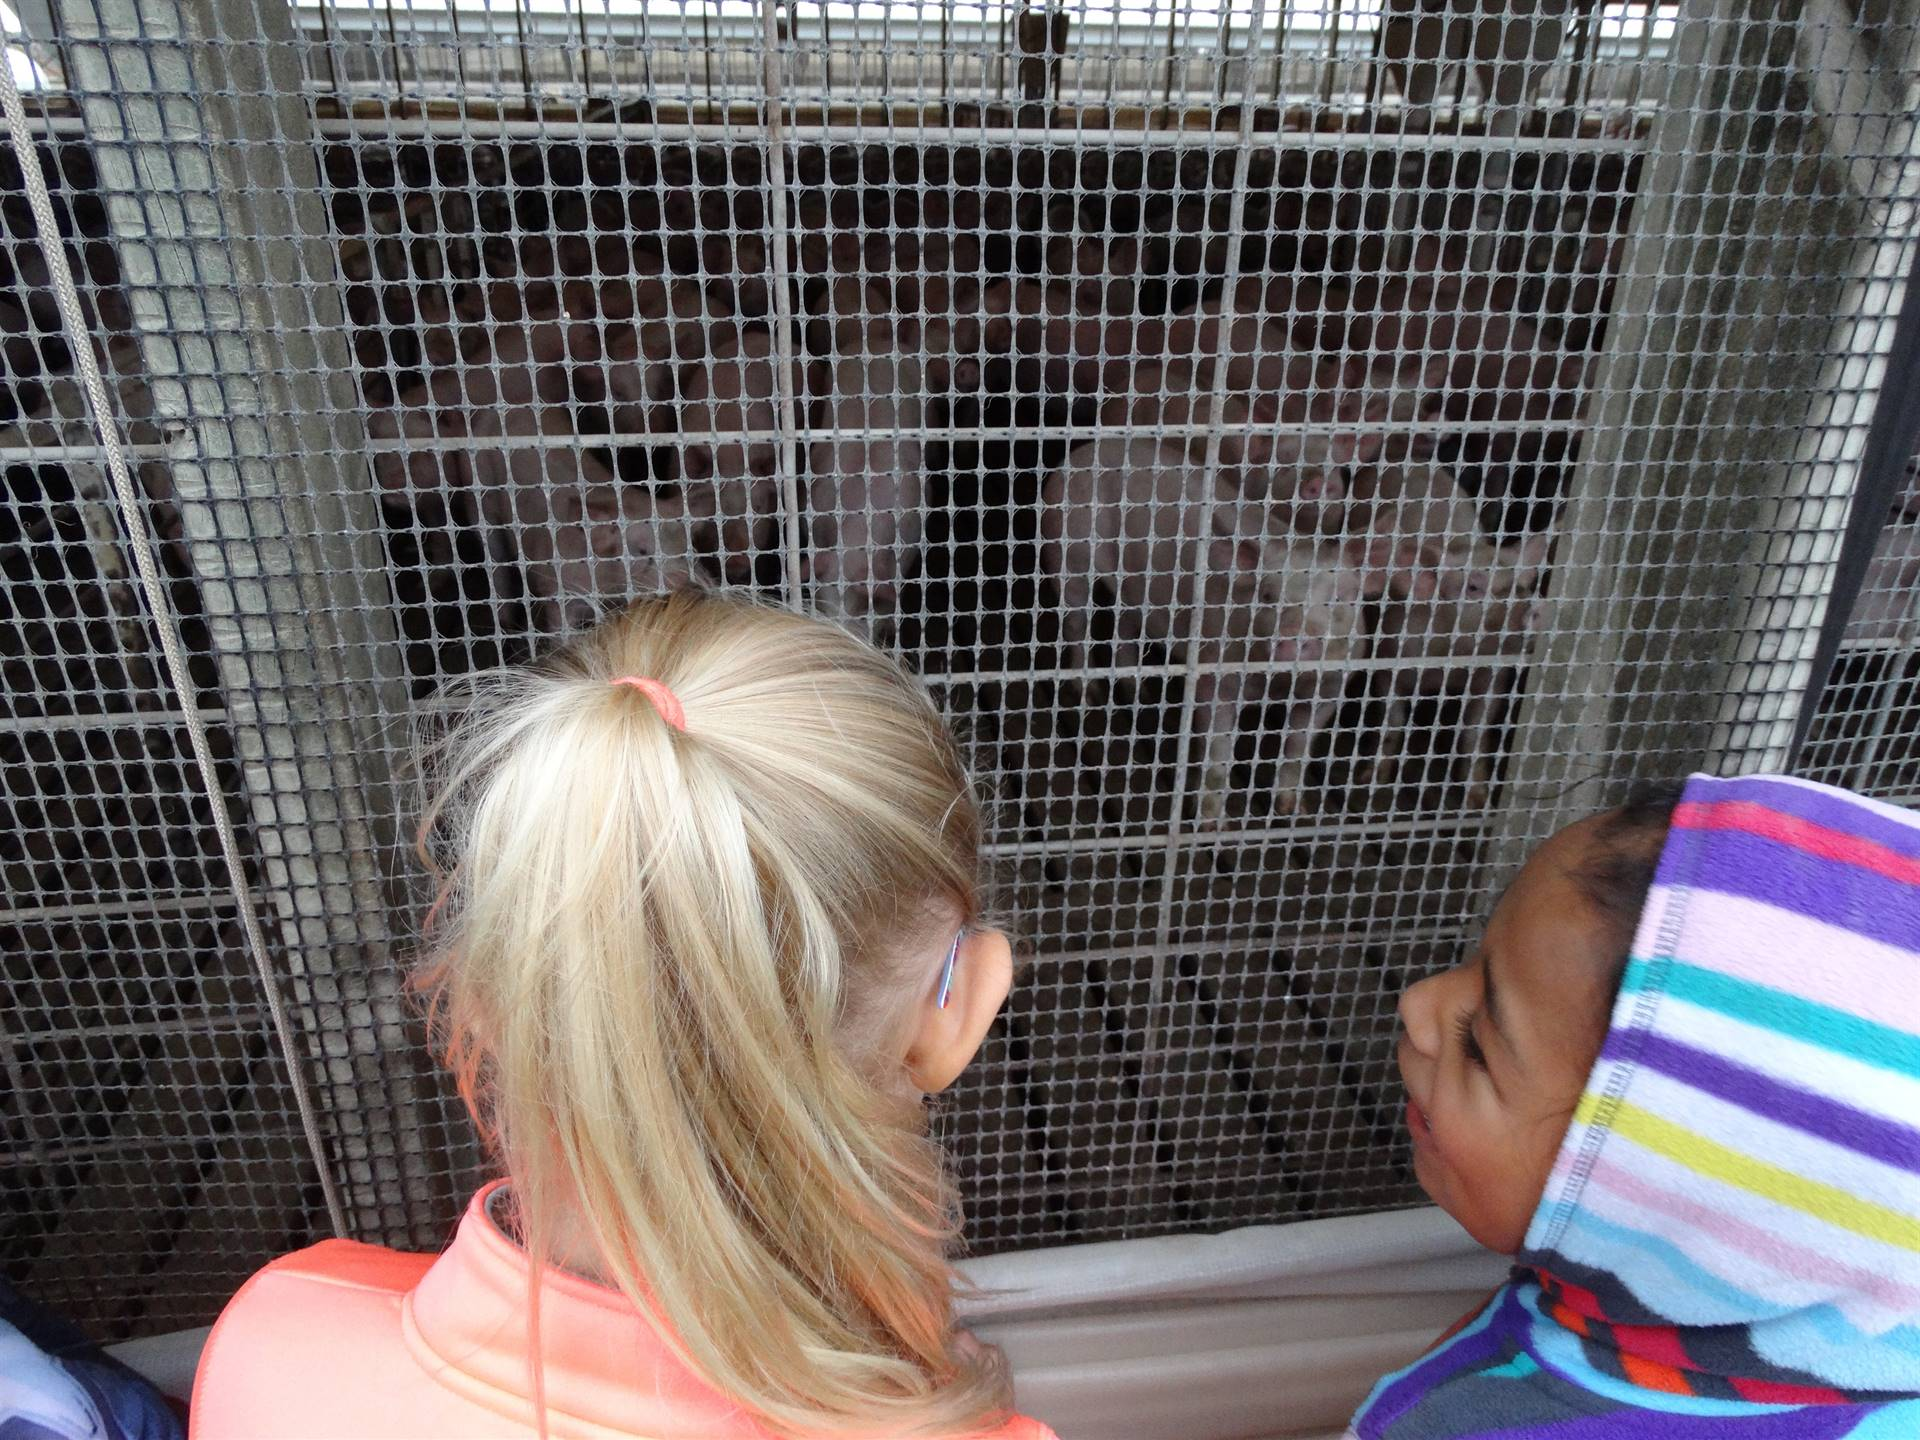 GHV first graders look at pigs while on a field trip to a farm